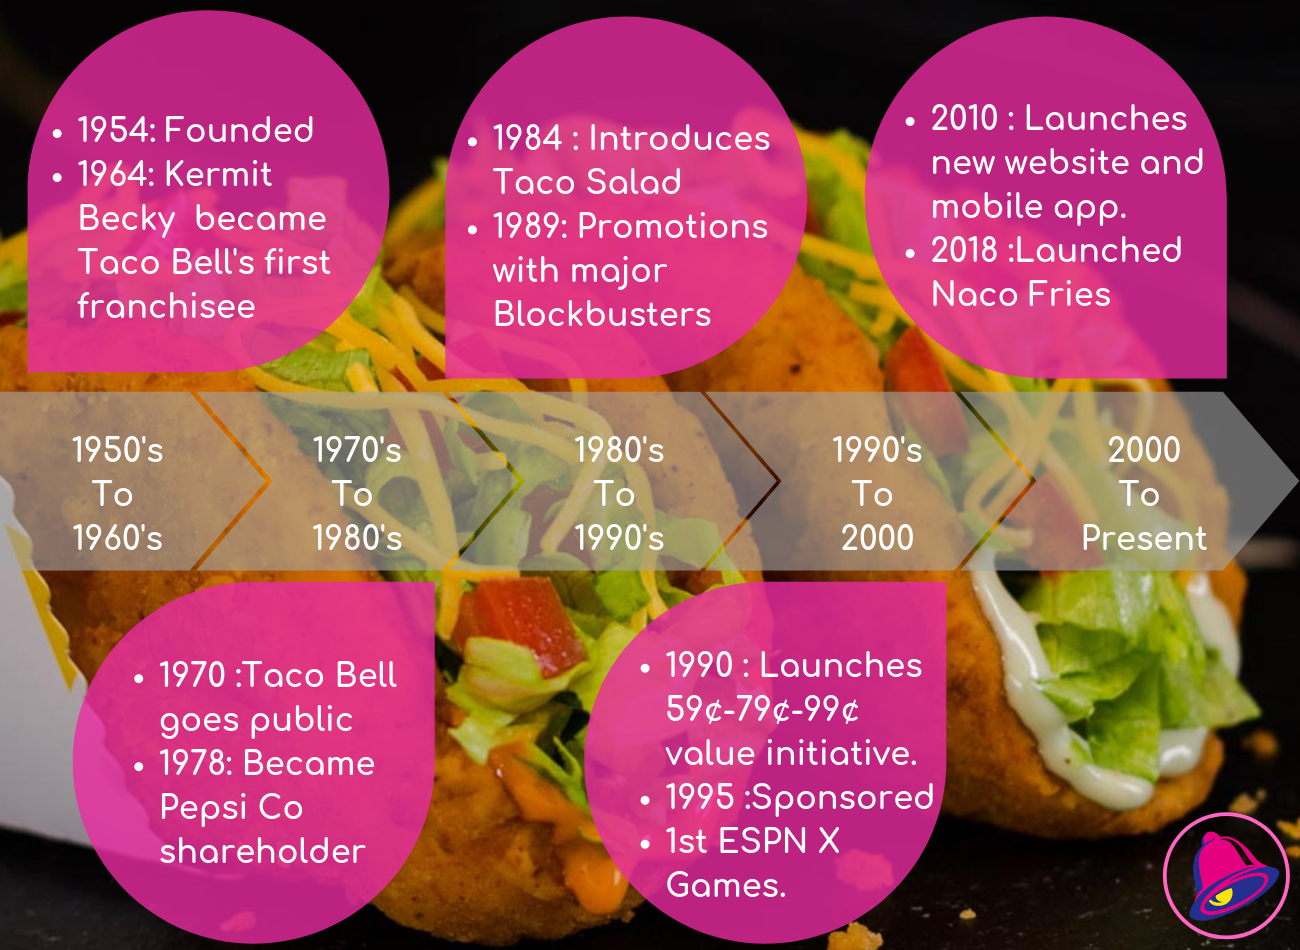 The history of Taco Bell from 1950-Present